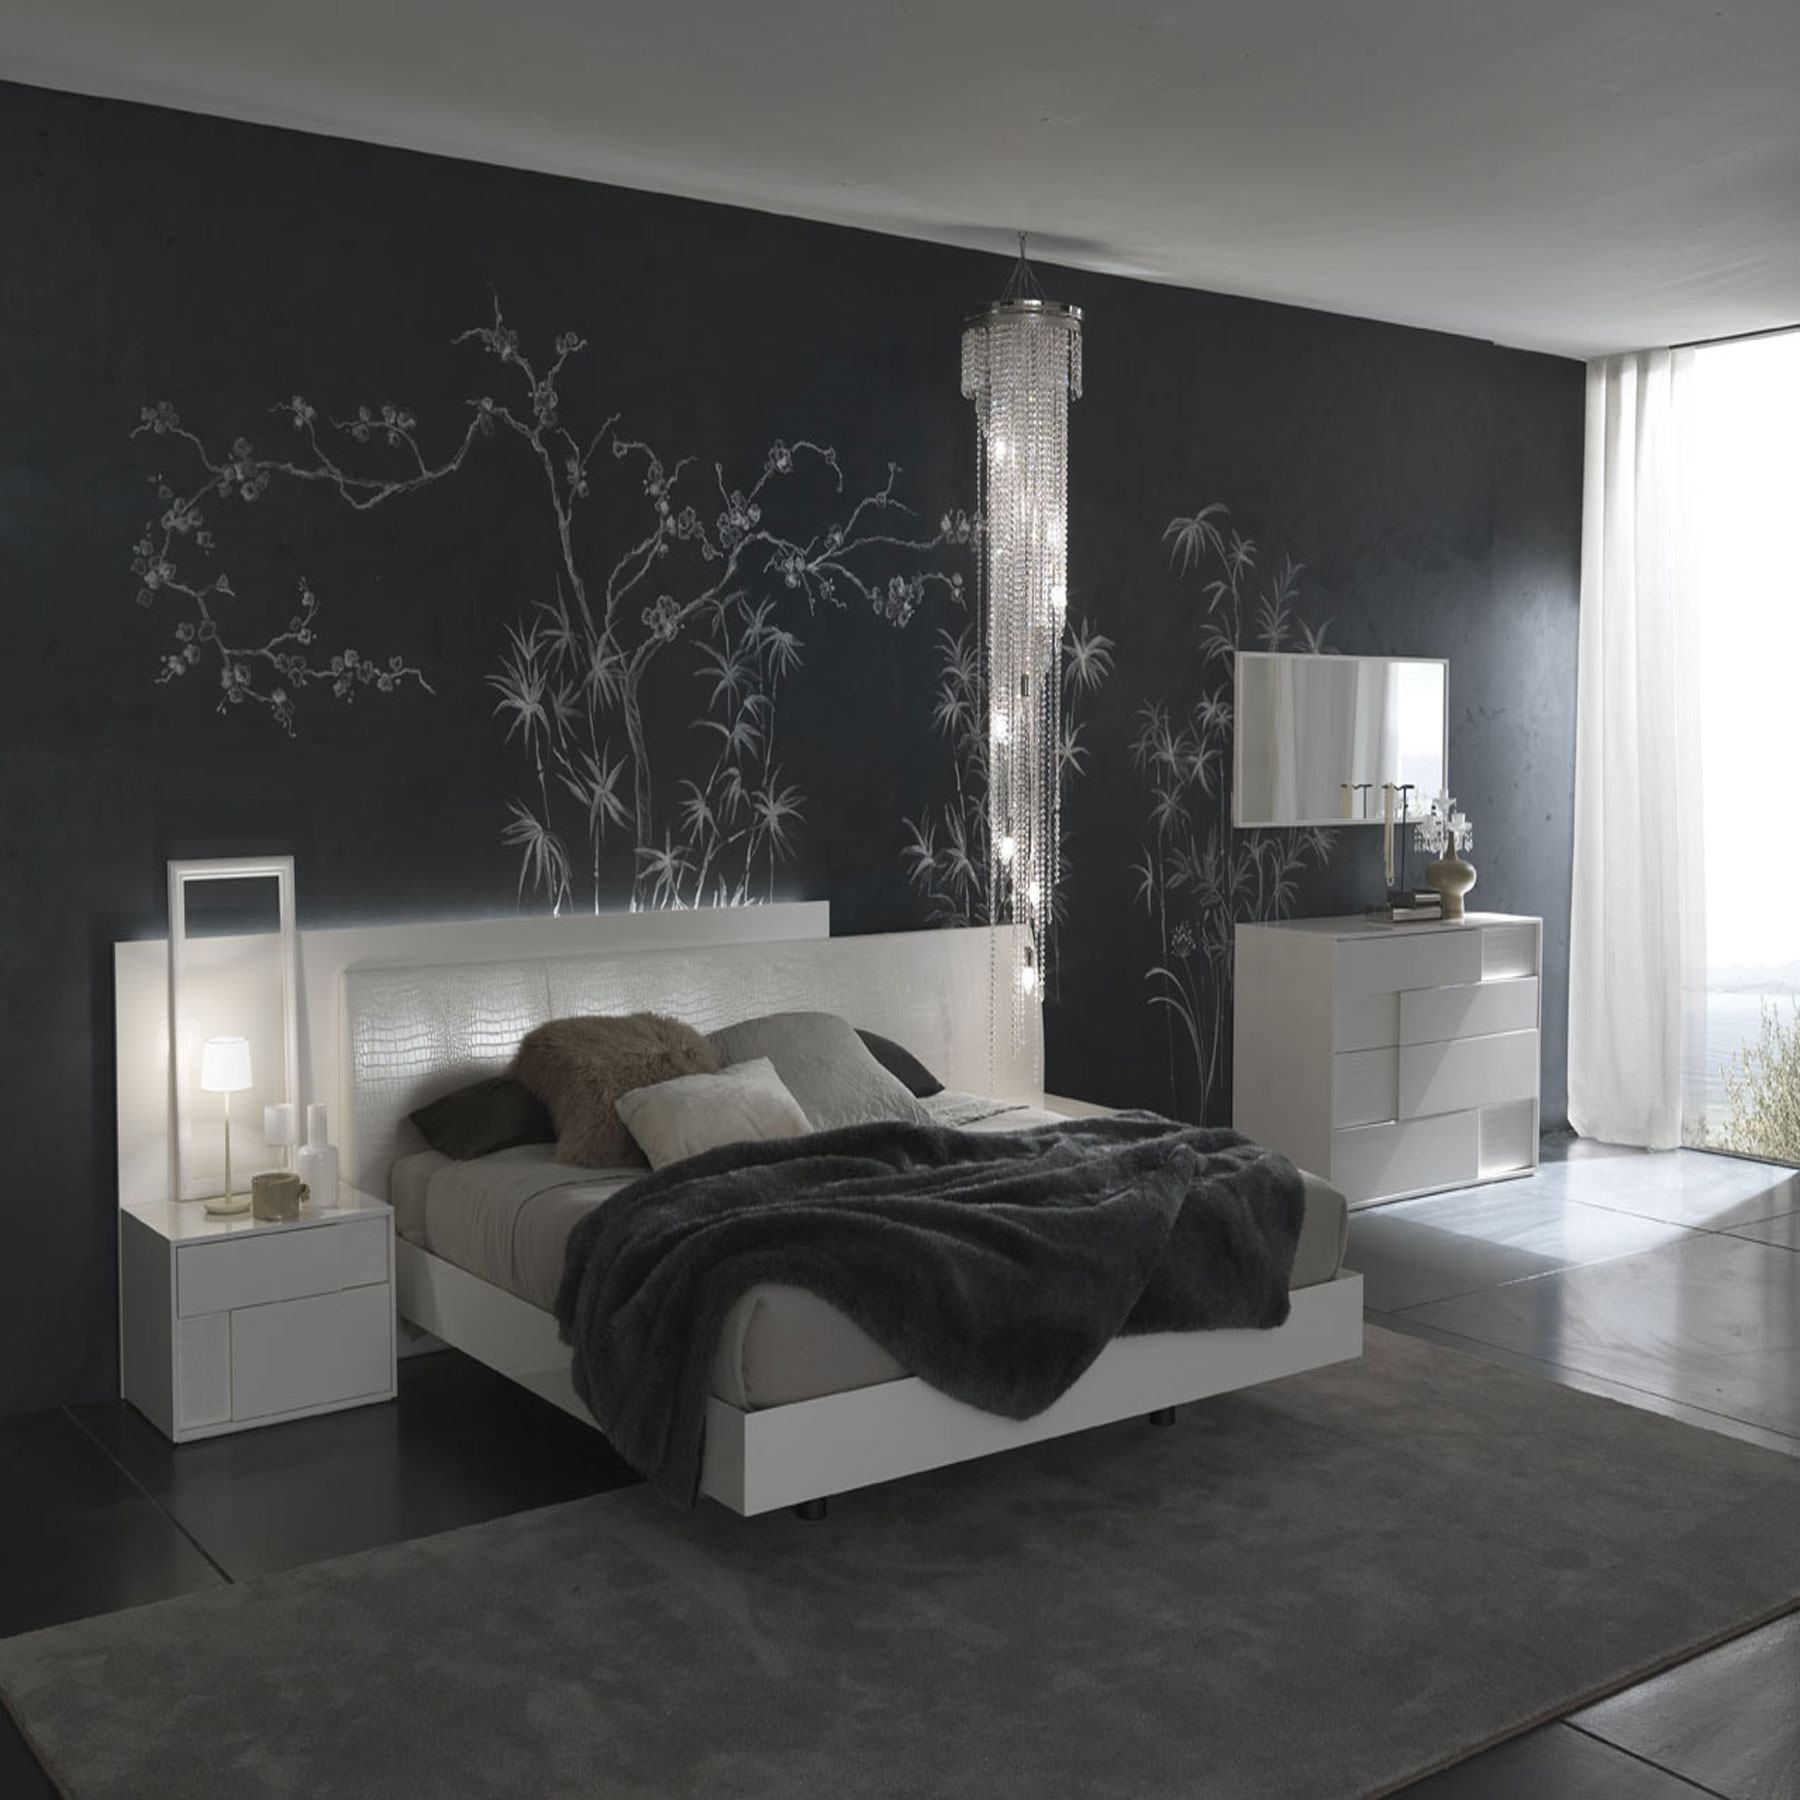 Room Deco: 50 Best Bedrooms With White Furniture For 2020